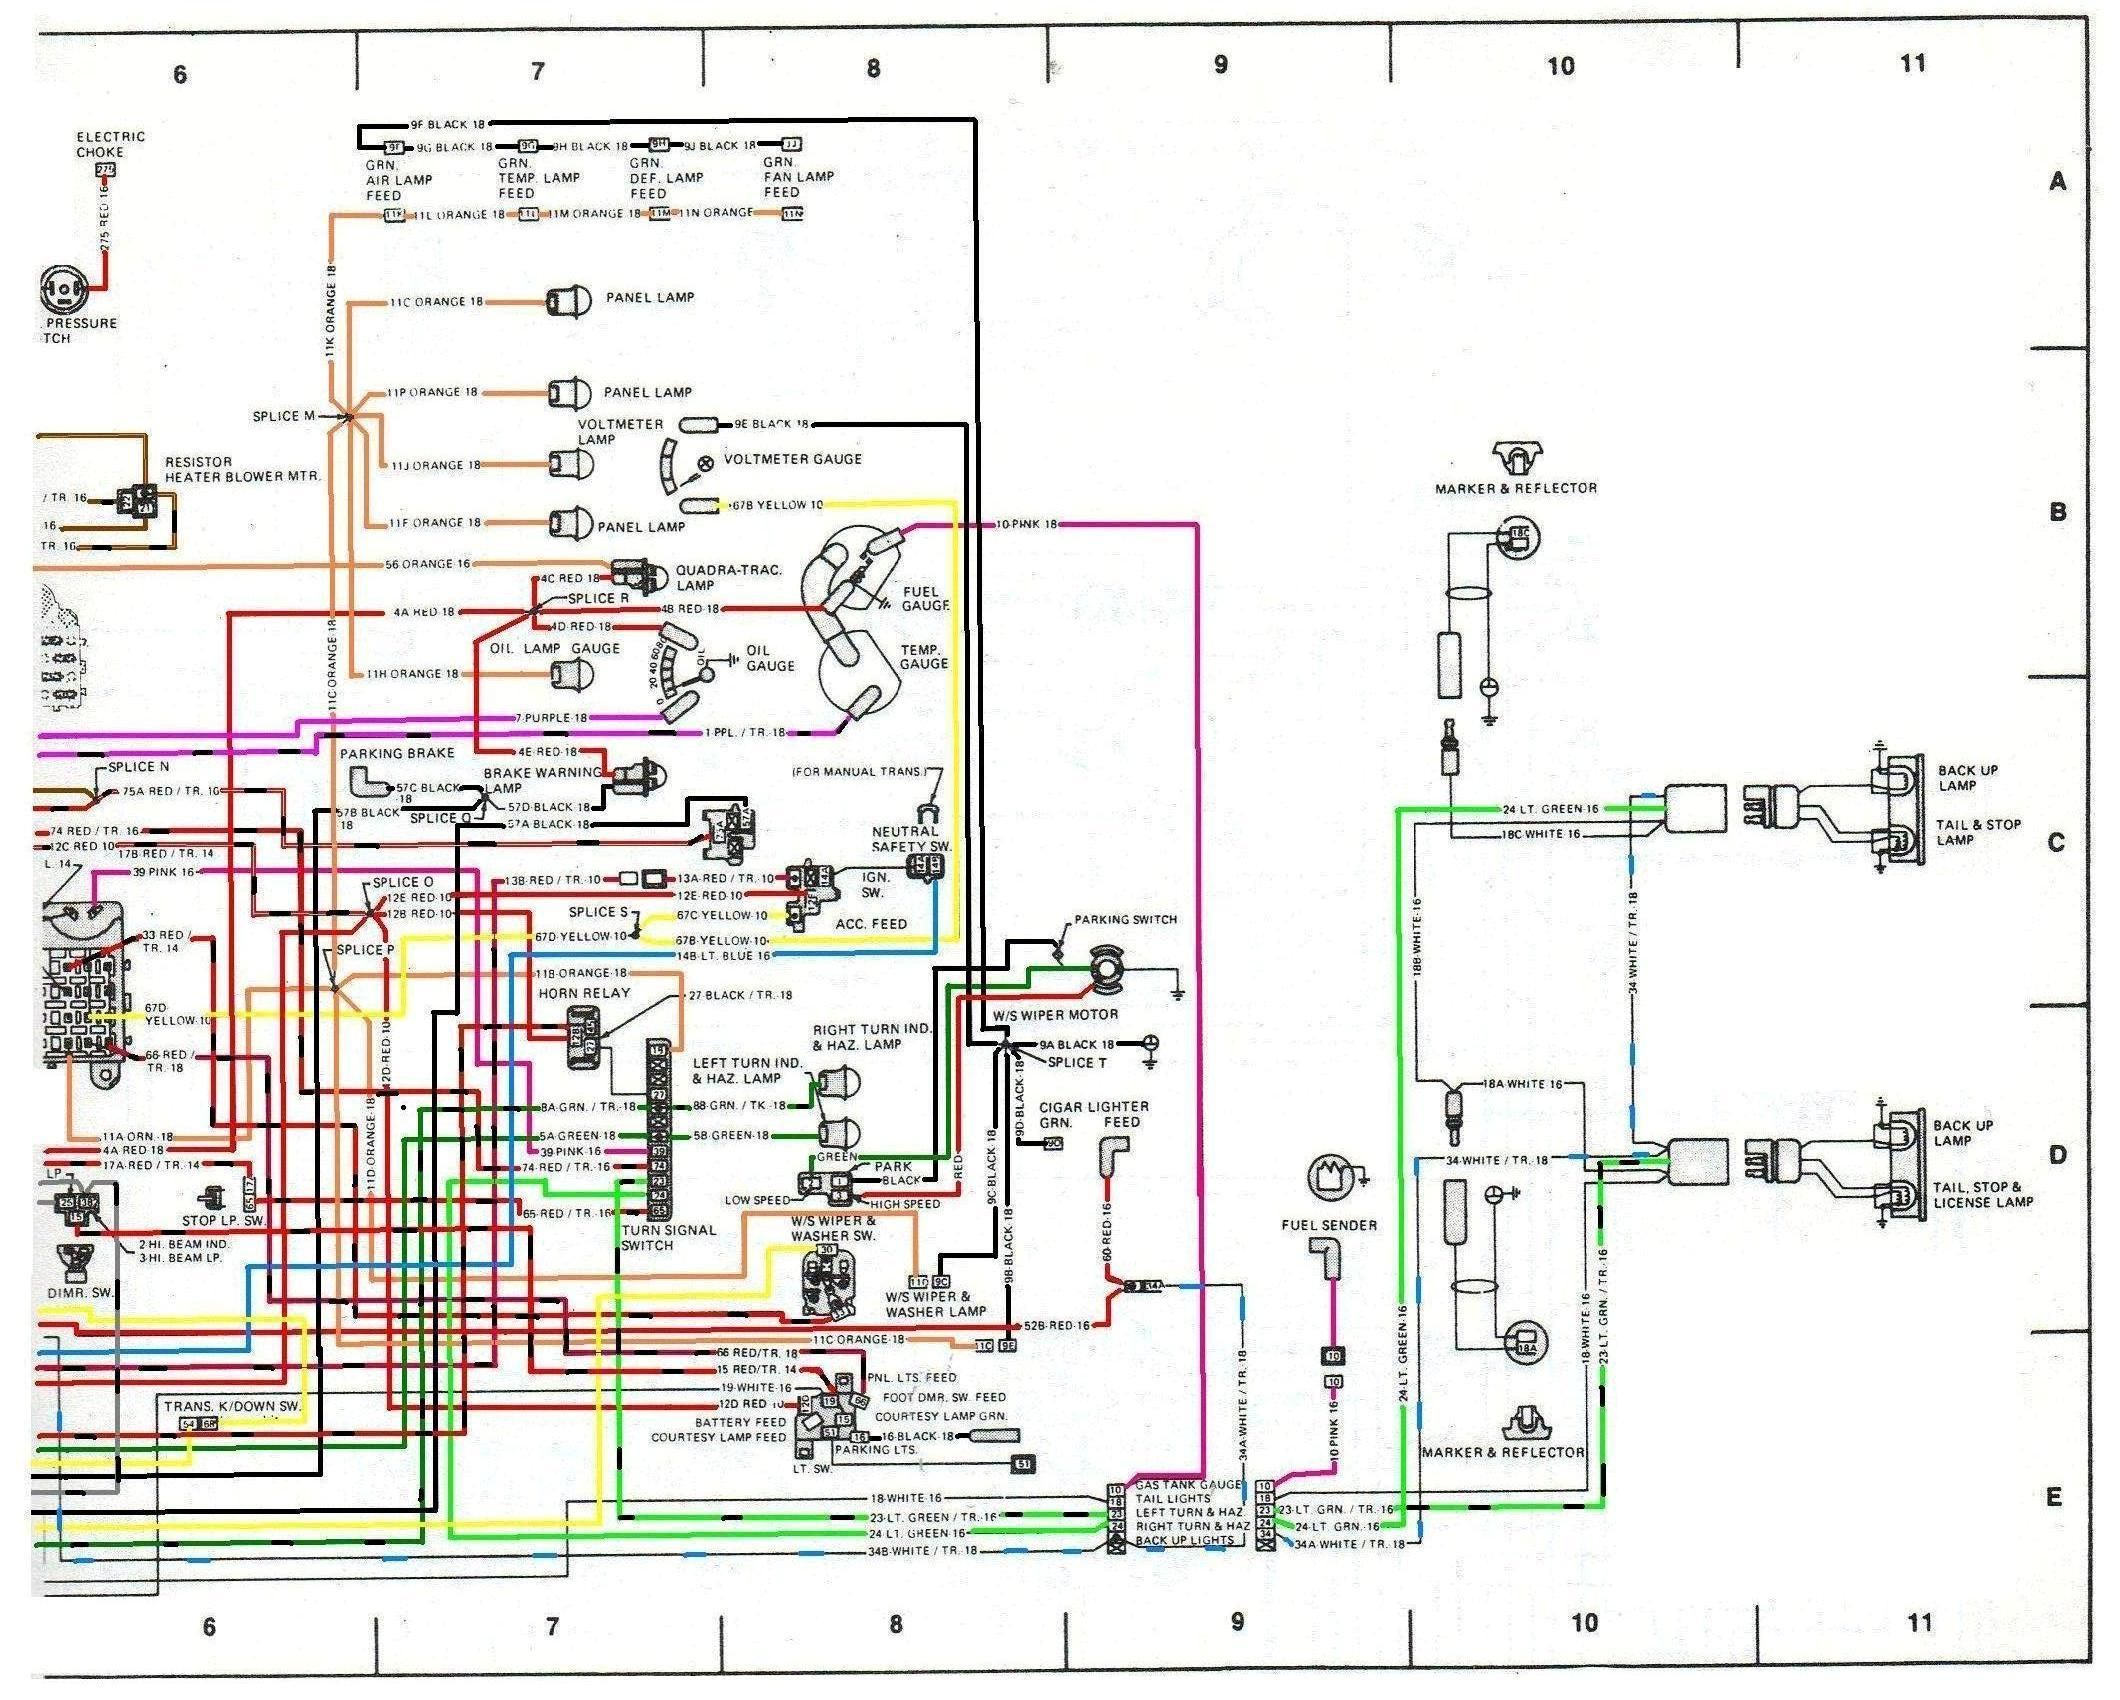 83 Jeep Cj7 Wiring Diagram Starting Know About Wiring Diagram \u2022 Ram  3500 Wiring Diagram Cj7 Wiring Diagram